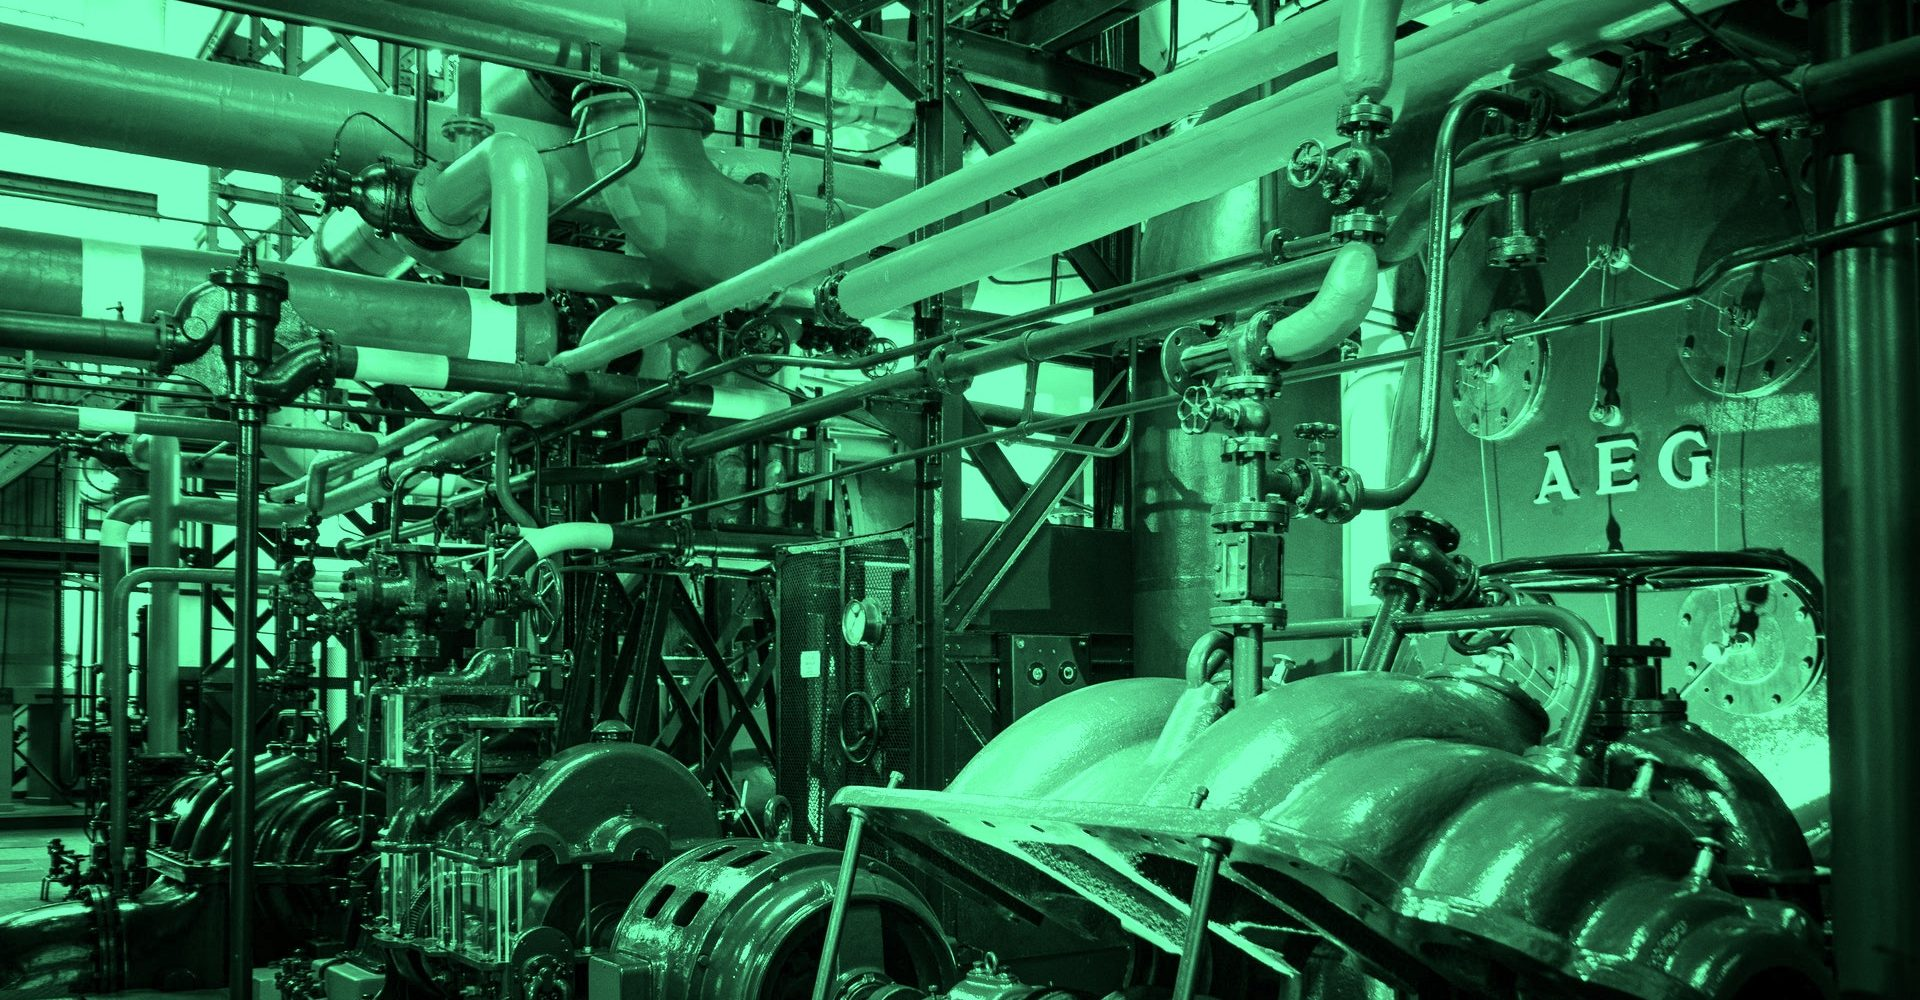 Instrumentation, Controls and Electrical